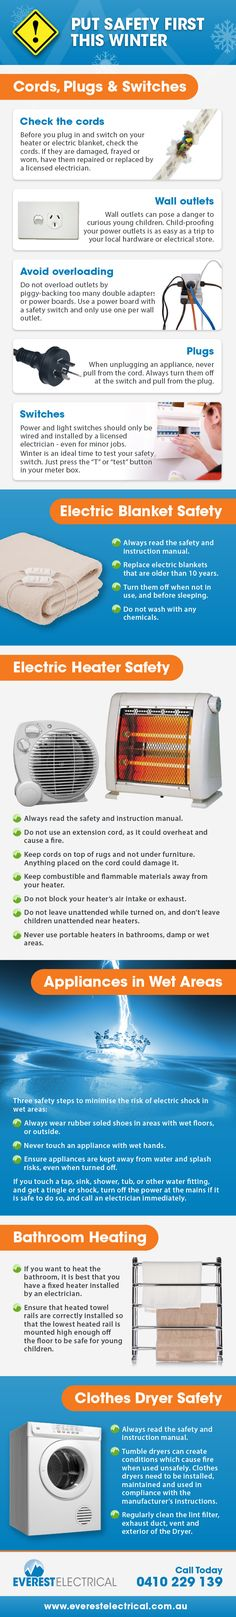 Everest Electrical provides some great electrical safety tips for this Winter